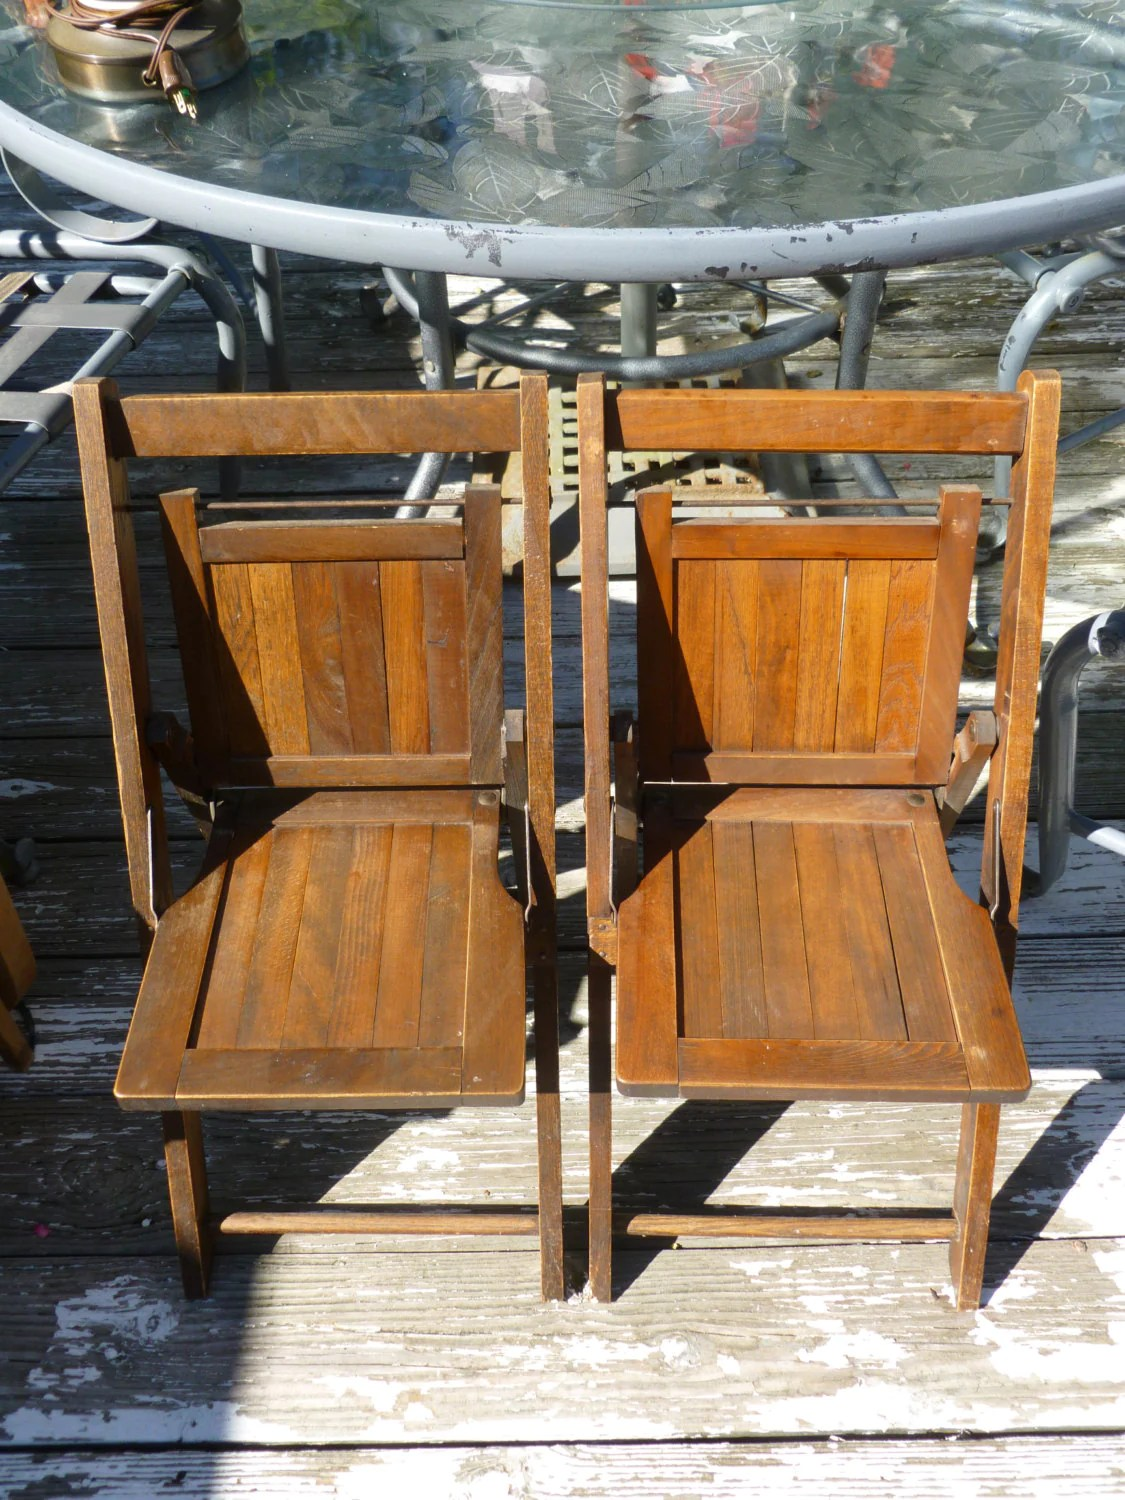 Fold Up Chairs 2 Antique Wooden Childrens Chairs Fold Up Great Patina